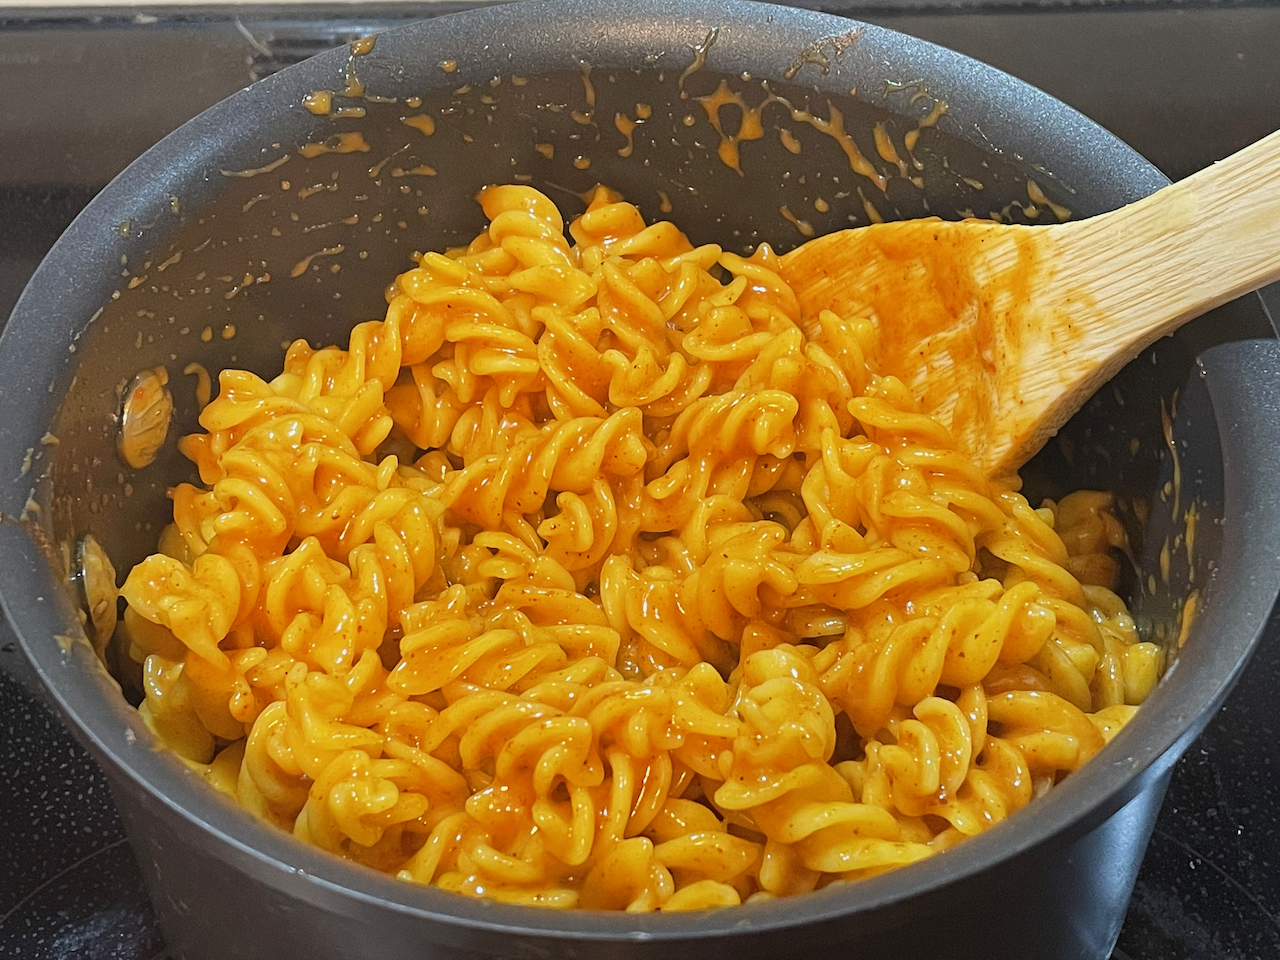 A pot of fusilli noodles coated in an orange colored sauce.